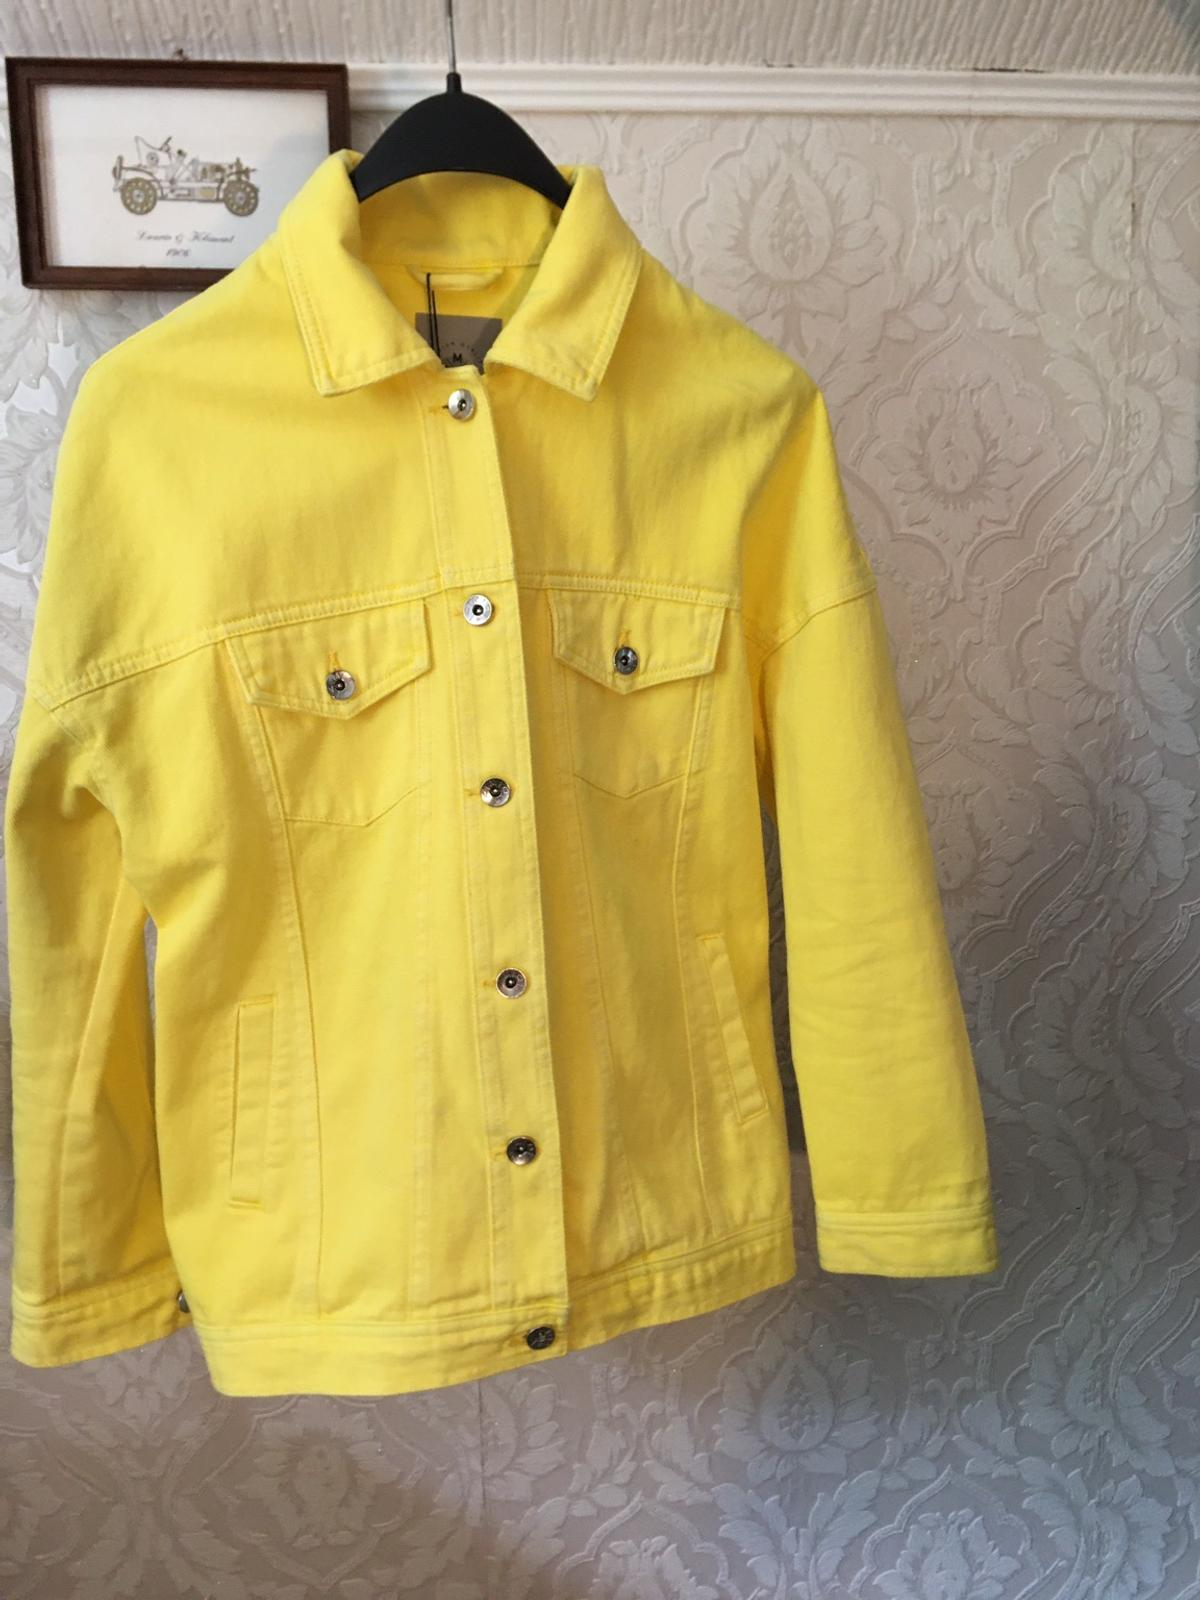 It's a bright yellow Denim Jacket it's pretty new The tag isn't removed yet and it looks perfect